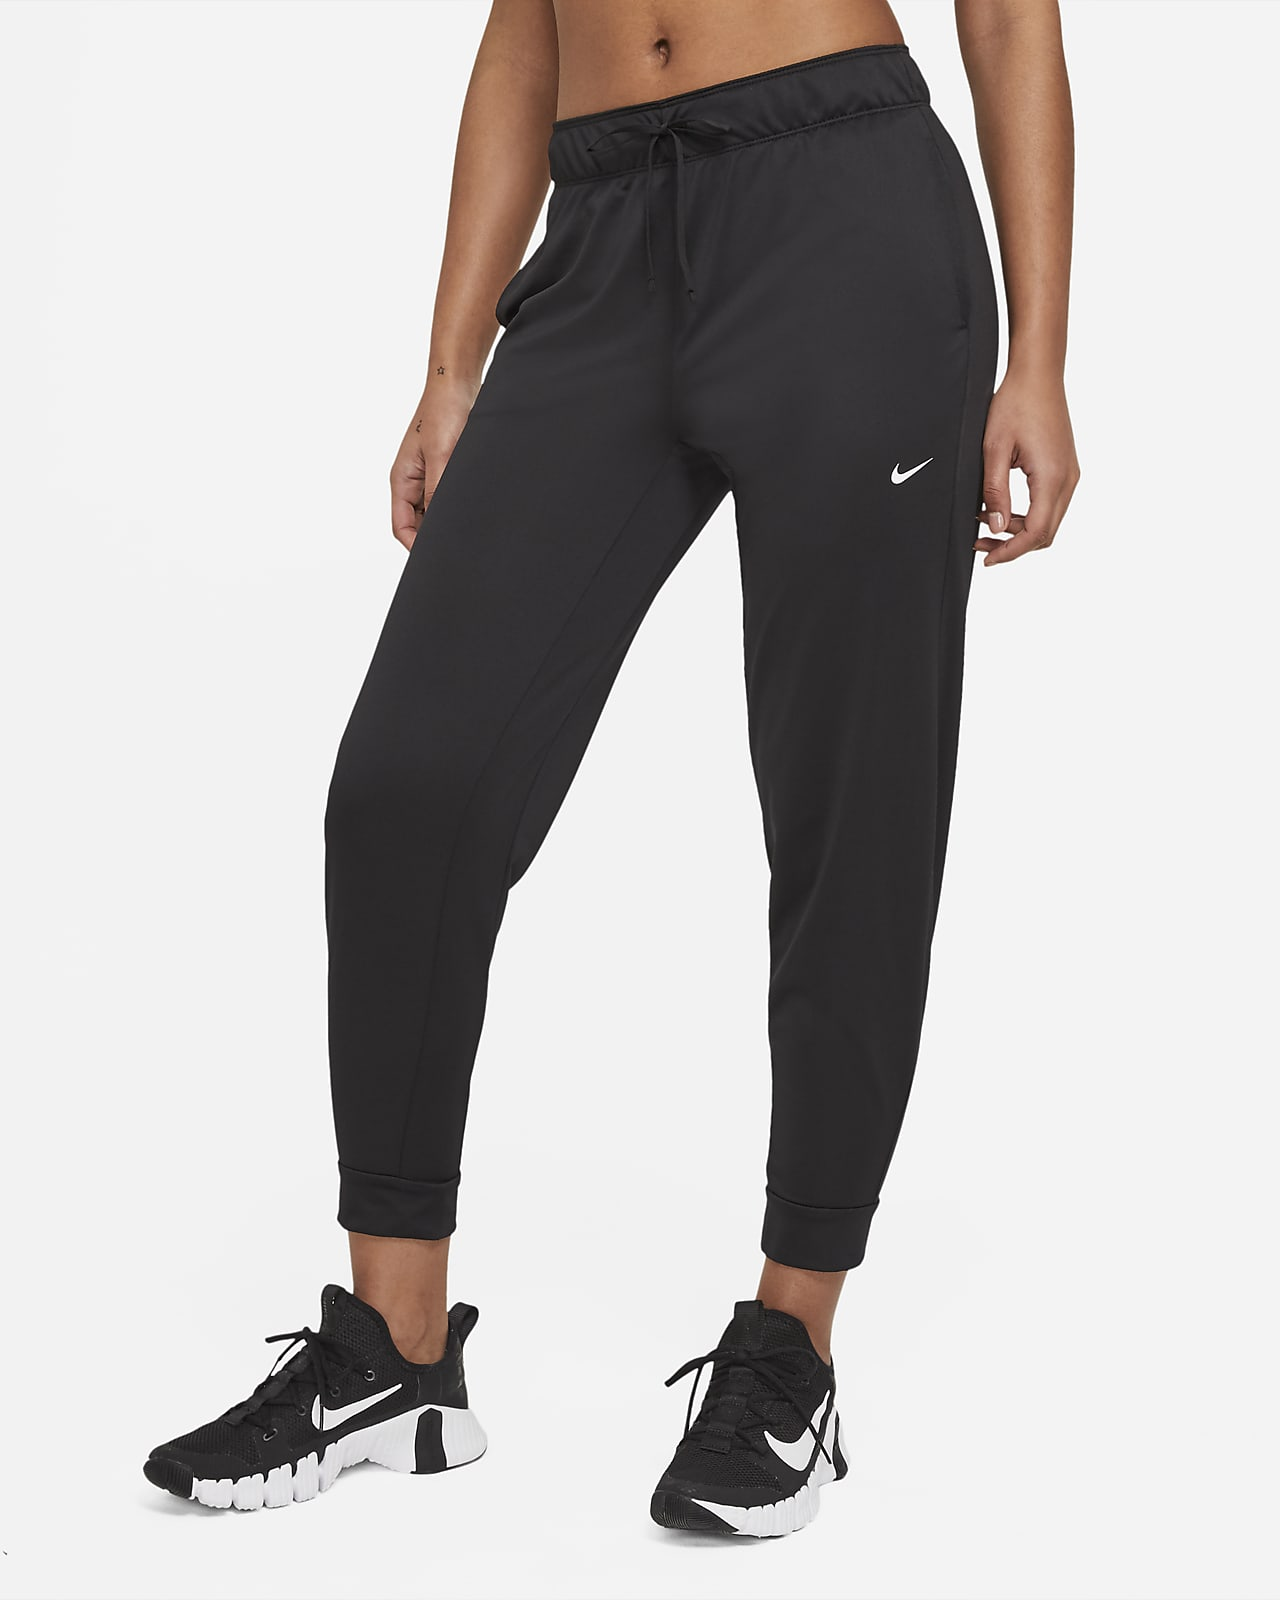 Nike Attack Women's 7/8 Training Pants